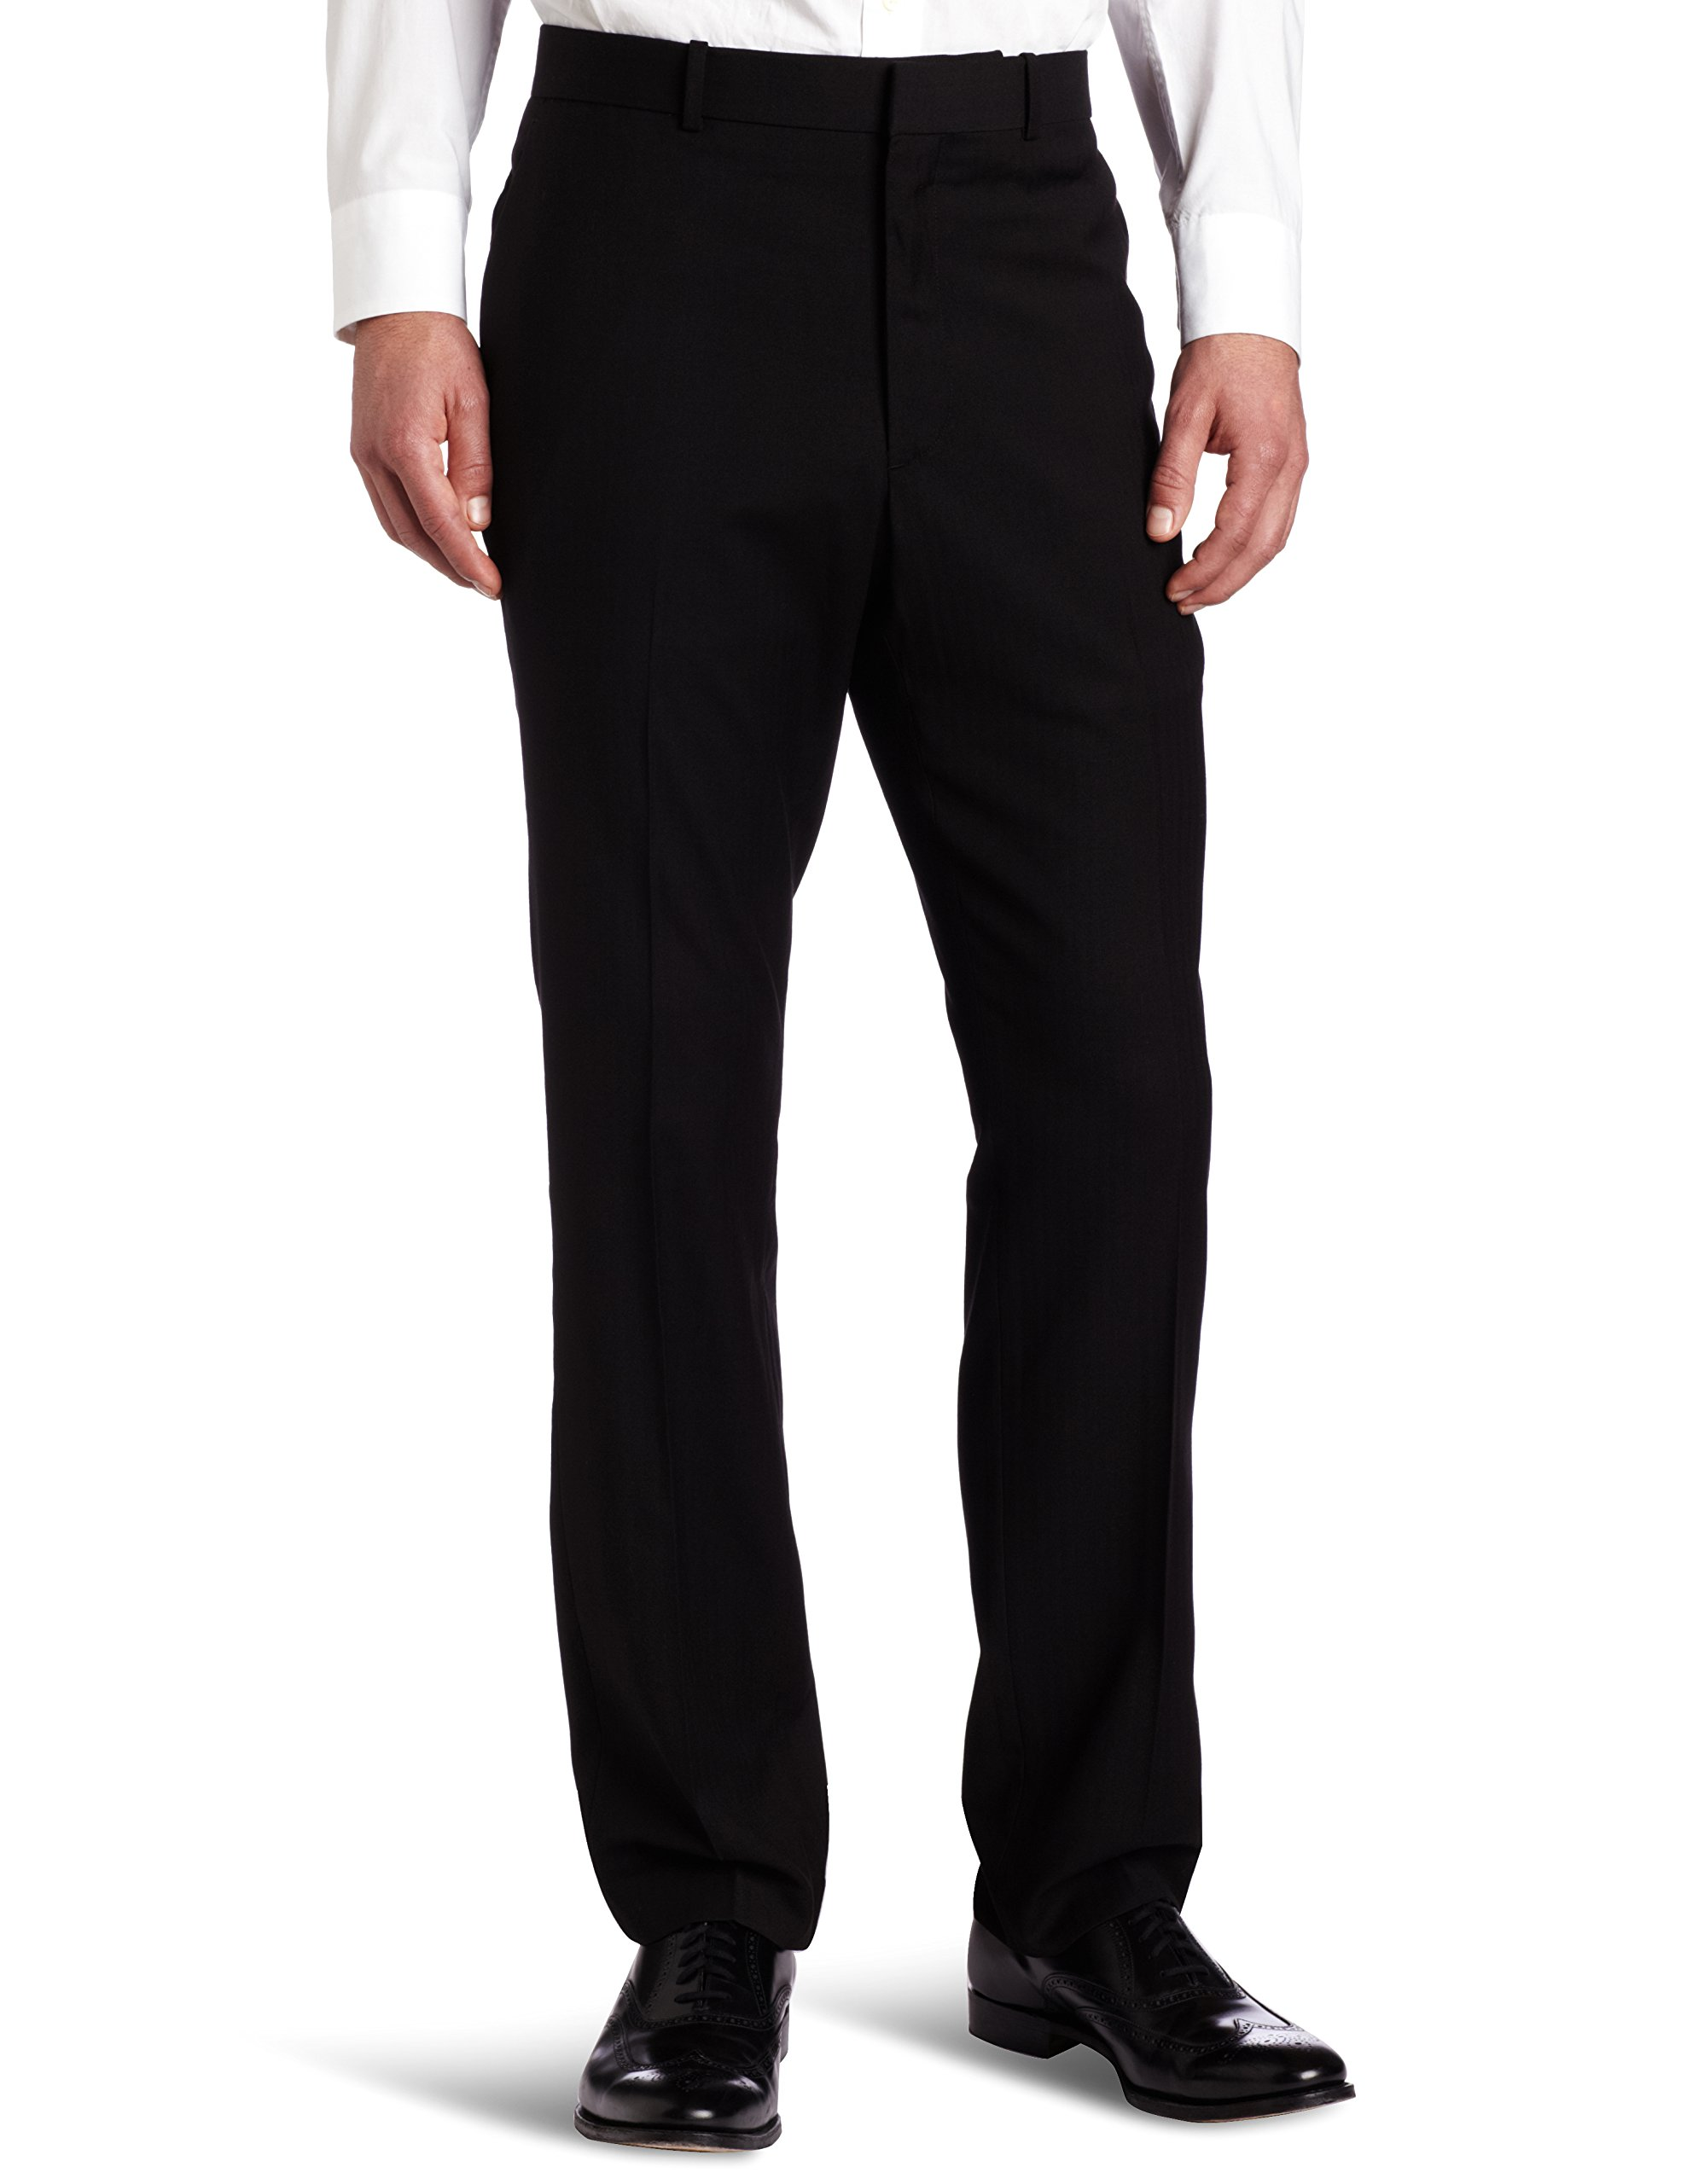 Perry Ellis Men's Solid herringbone Slim Fit Pant, Black Ice, 28x30